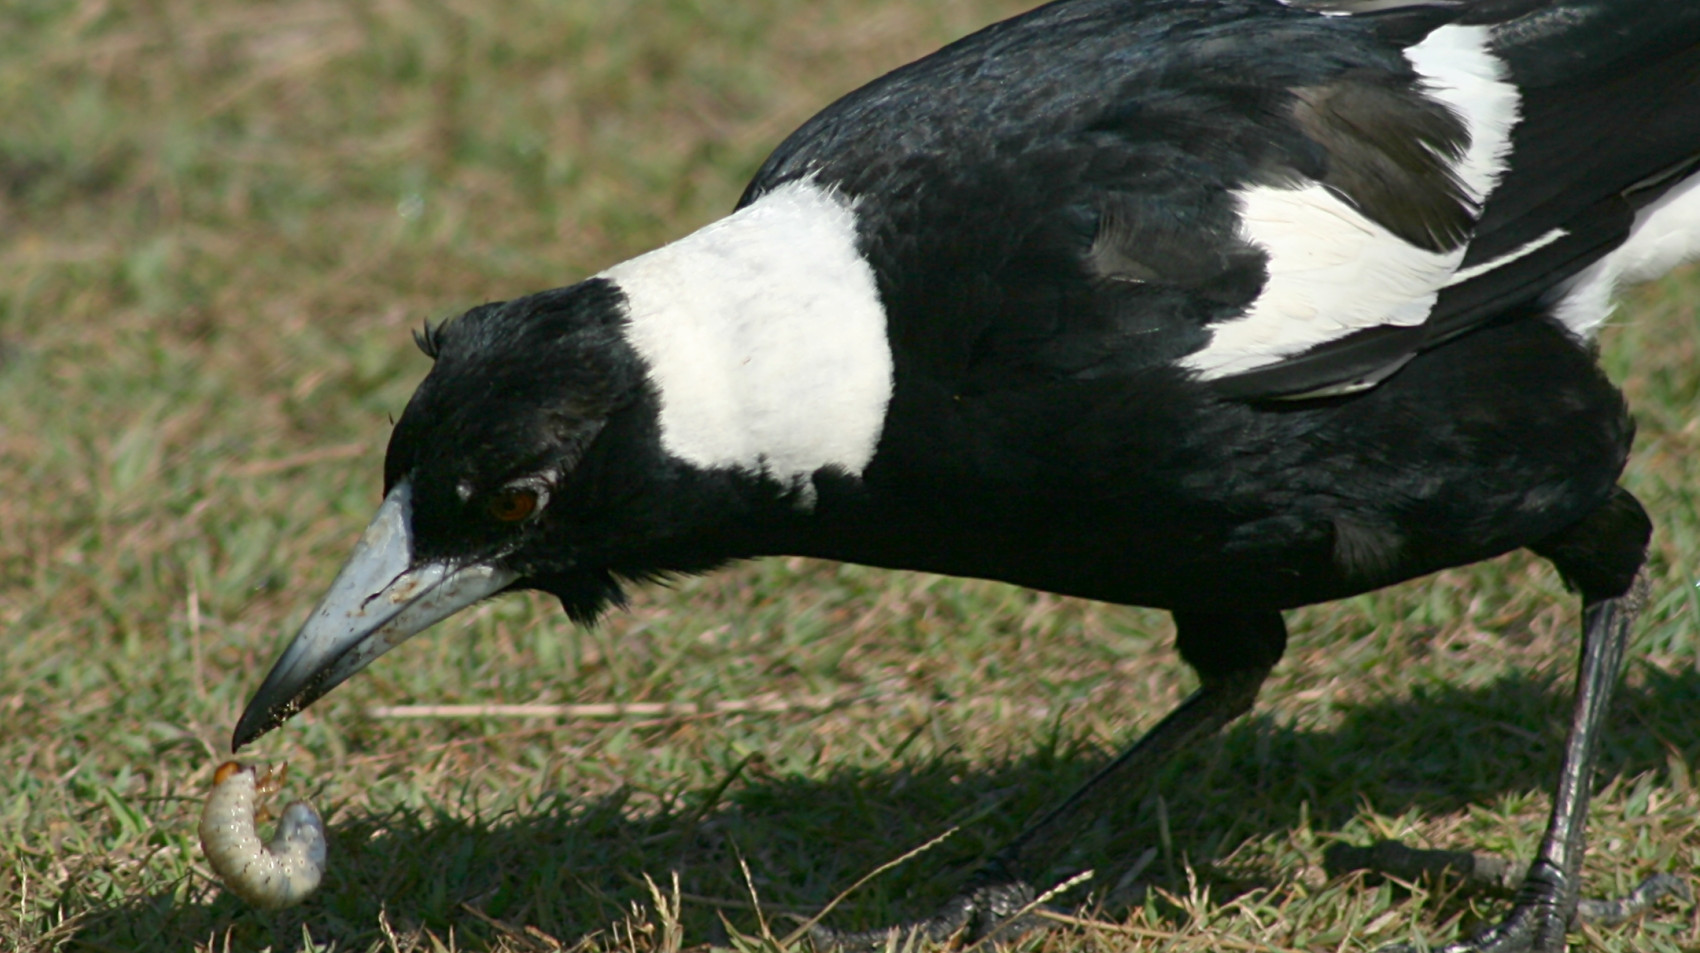 Adult male Australian Magpie foraging